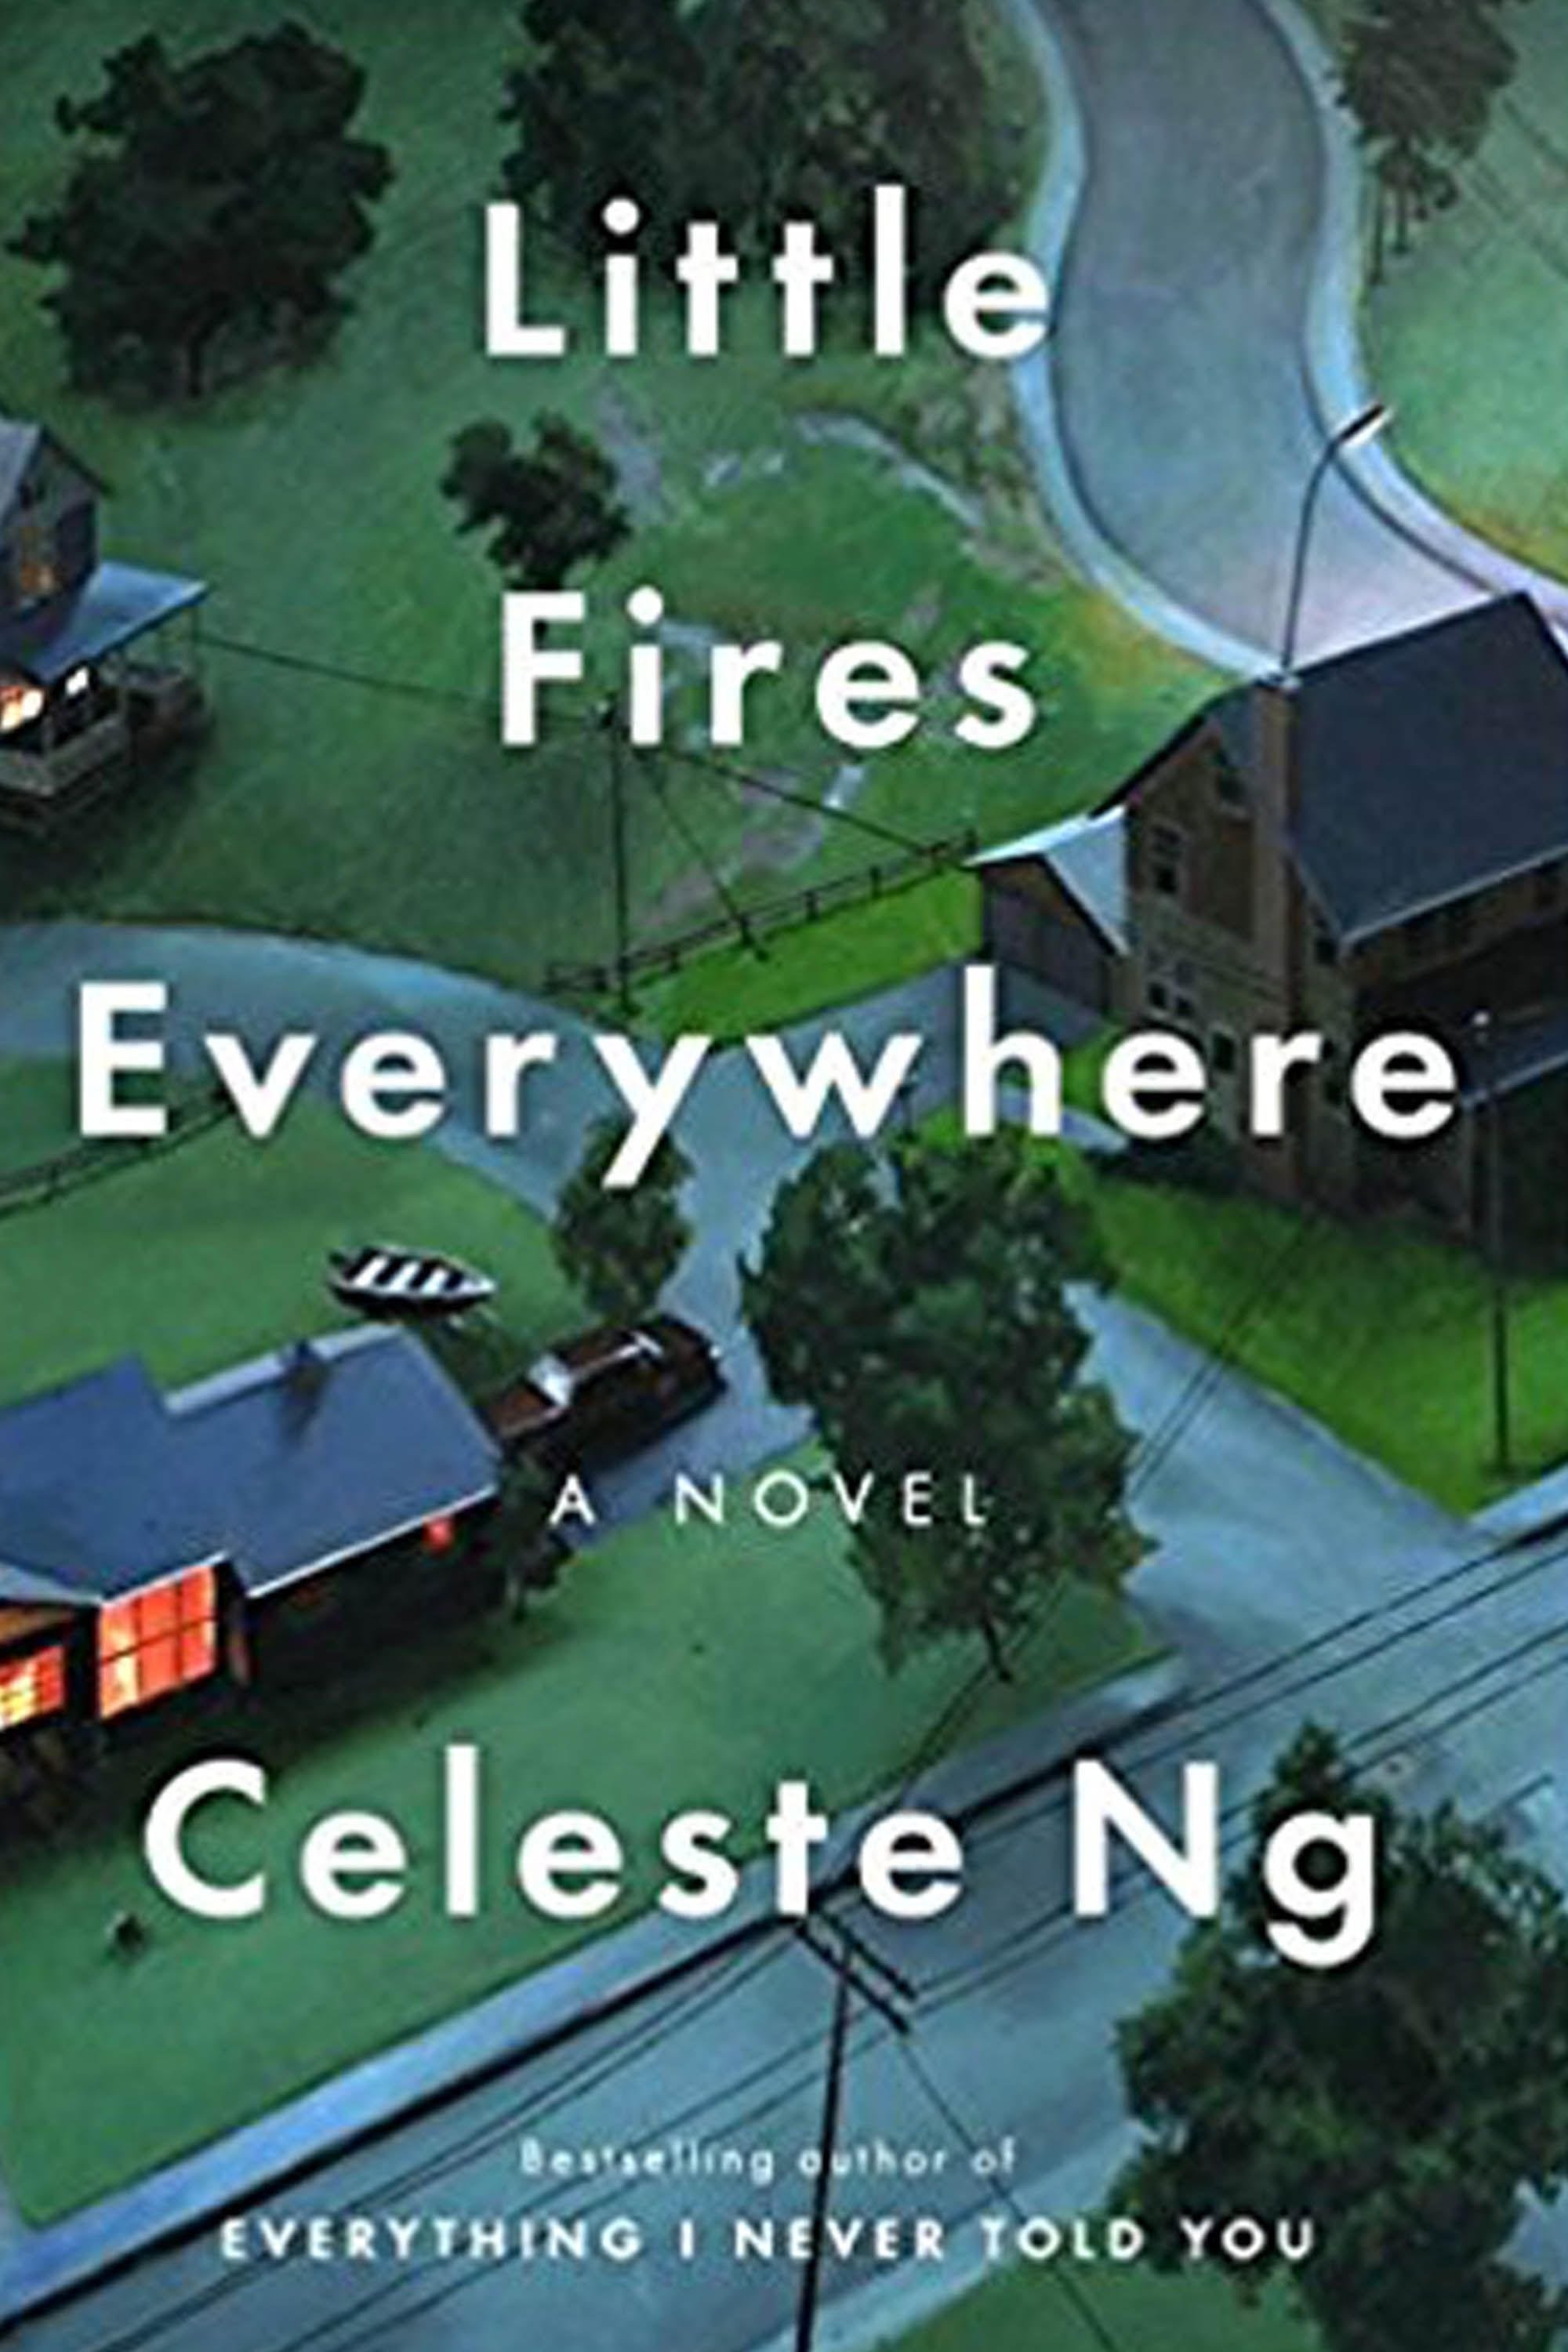 "<p>Celeste Ng enchanted readers with her debut novel about the unexpected death of a teenage Chinese-American girl, <em data-verified=""redactor"" data-redactor-tag=""em"">Everything I Never Told You</em><span class=""redactor-invisible-space"" data-verified=""redactor"" data-redactor-tag=""span"" data-redactor-class=""redactor-invisible-space""><em data-verified=""redactor"" data-redactor-tag=""em"">.</em><span class=""redactor-invisible-space"" data-verified=""redactor"" data-redactor-tag=""span"" data-redactor-class=""redactor-invisible-space""> Now she returns with another tale of a quiet town slowly devastated by mystery, this time in Cleveland's Shaker Heights, where the arrival of a single mother and her daughter begin to complicate the decisions of the families around them. (<a href=""https://www.amazon.com/Everything-Never-Told-You-Awards-ebook/dp/B00G3L7V0C"" data-tracking-id=""recirc-text-link"">September 12, Penguin Press</a>)</span></span></p>"